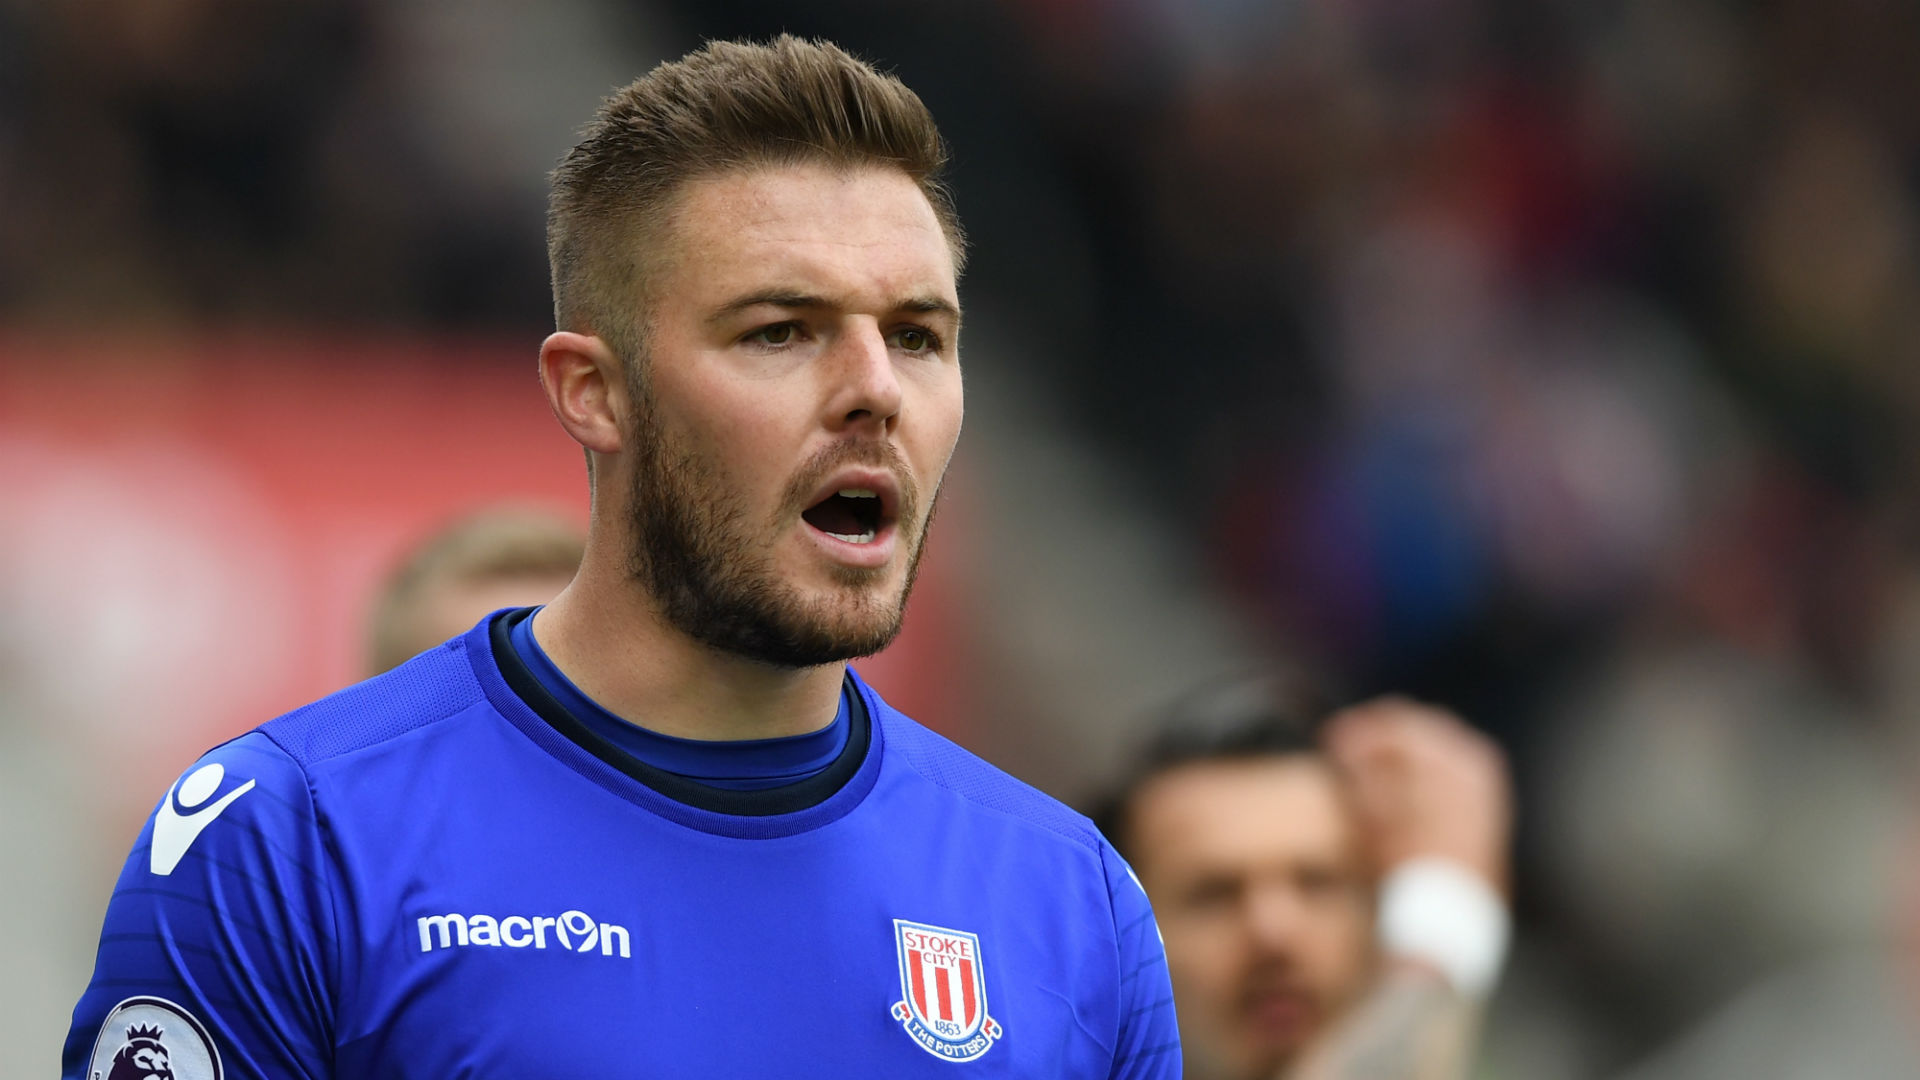 jack butland stoke 1o637vtwhmepo1aeelekc1d8g0 - 30/12/2017 TRANSFER NEWS, DONE DEALS AND RUMOURS